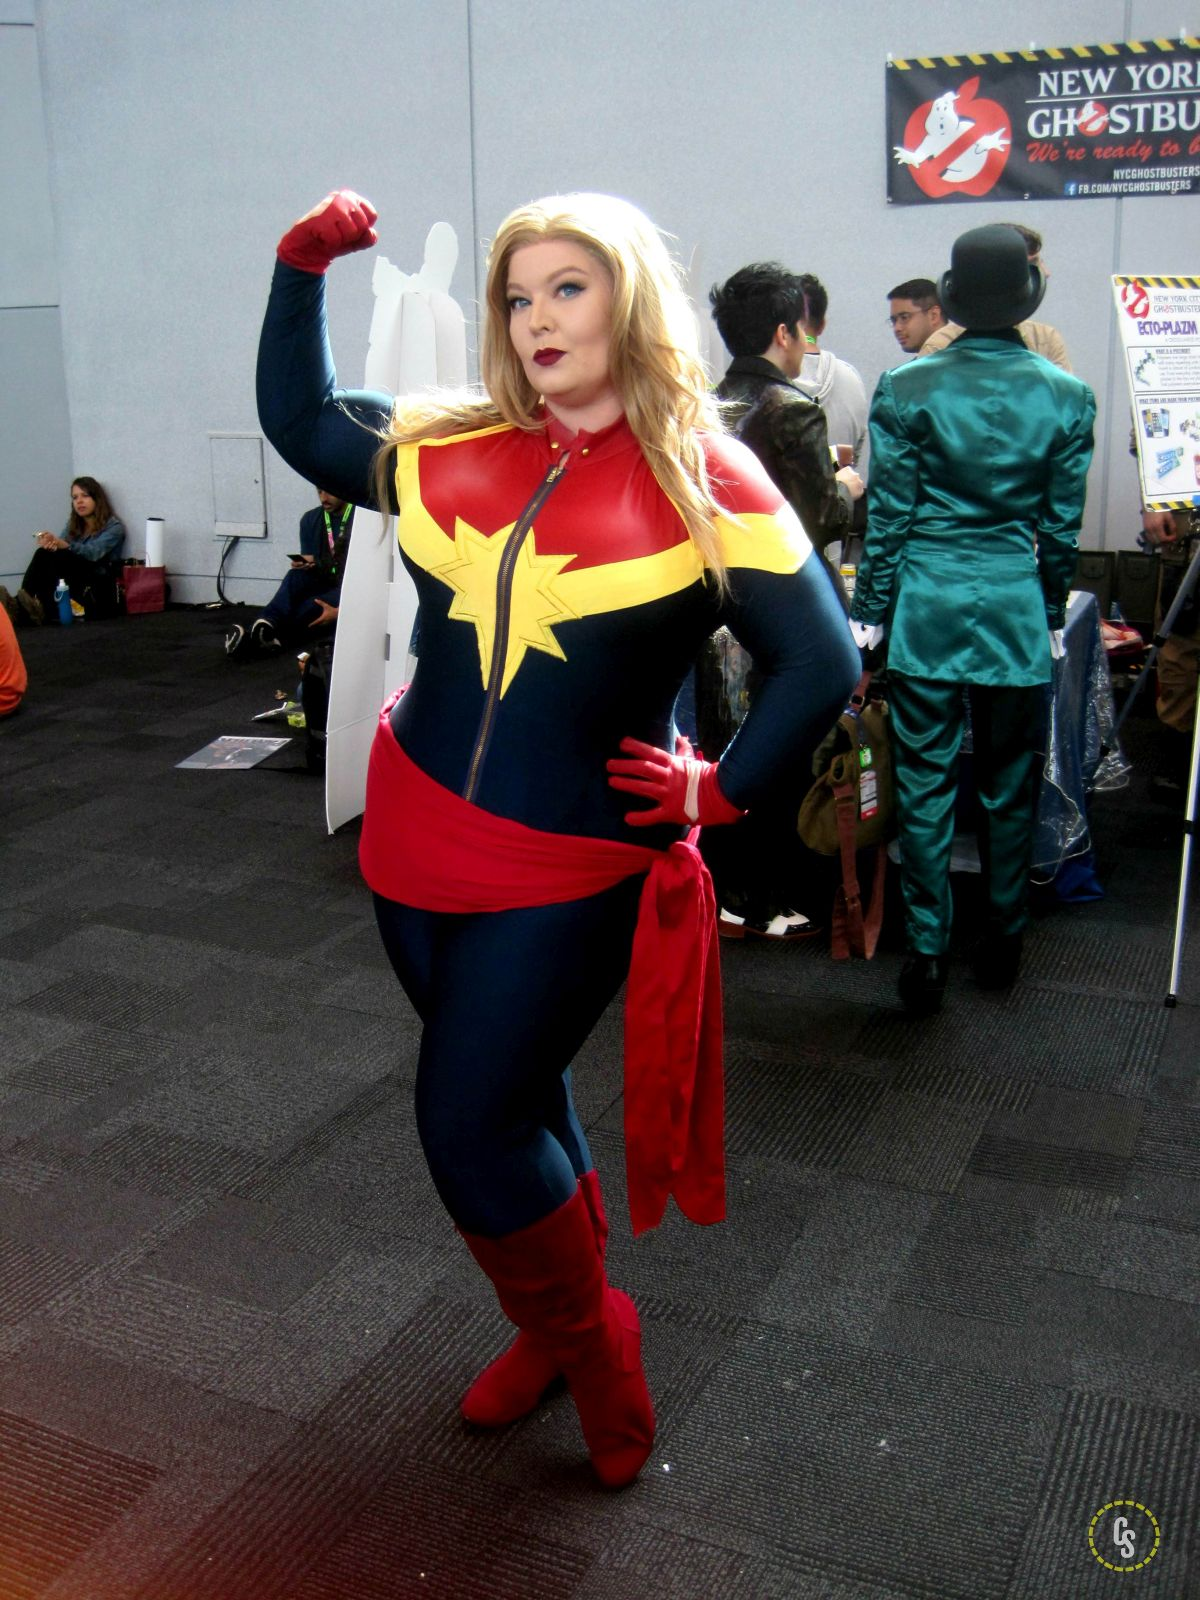 nycc182_057